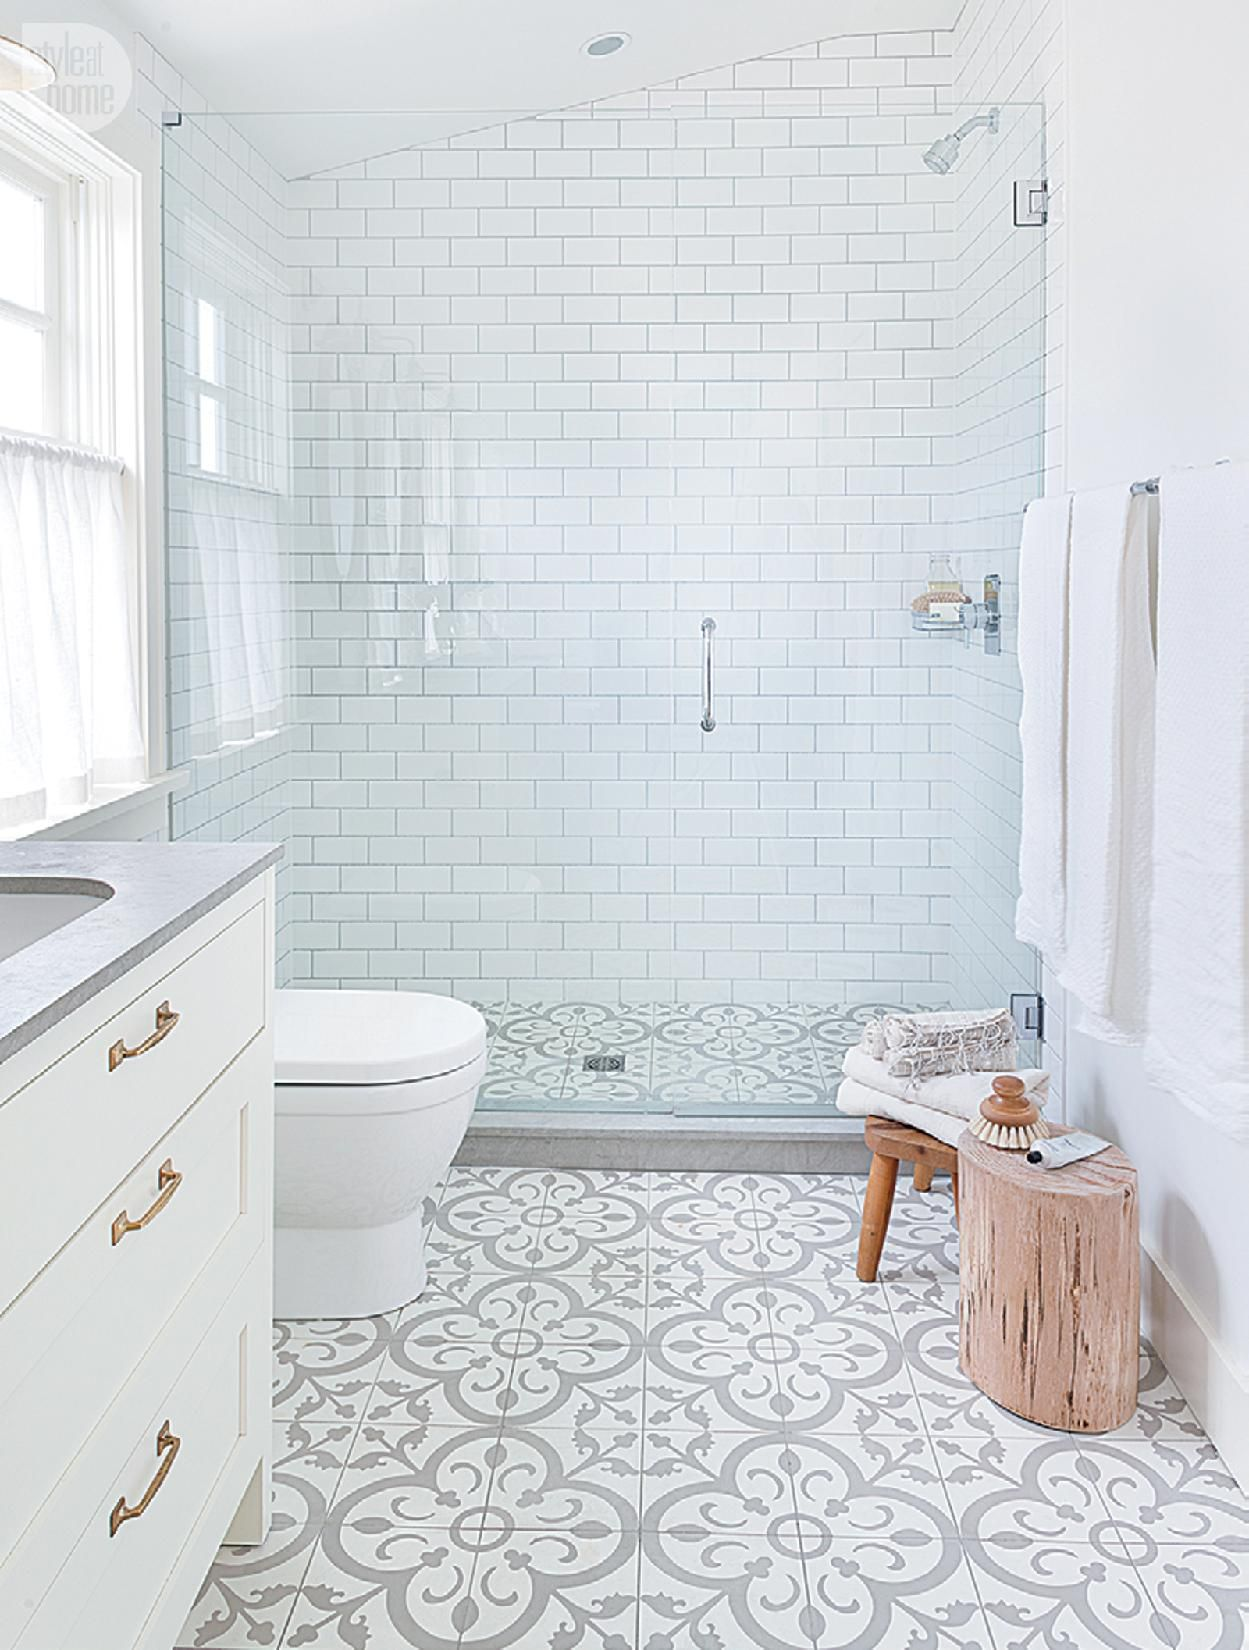 House tour: Modern eclectic family home | Shower fixtures, White ...